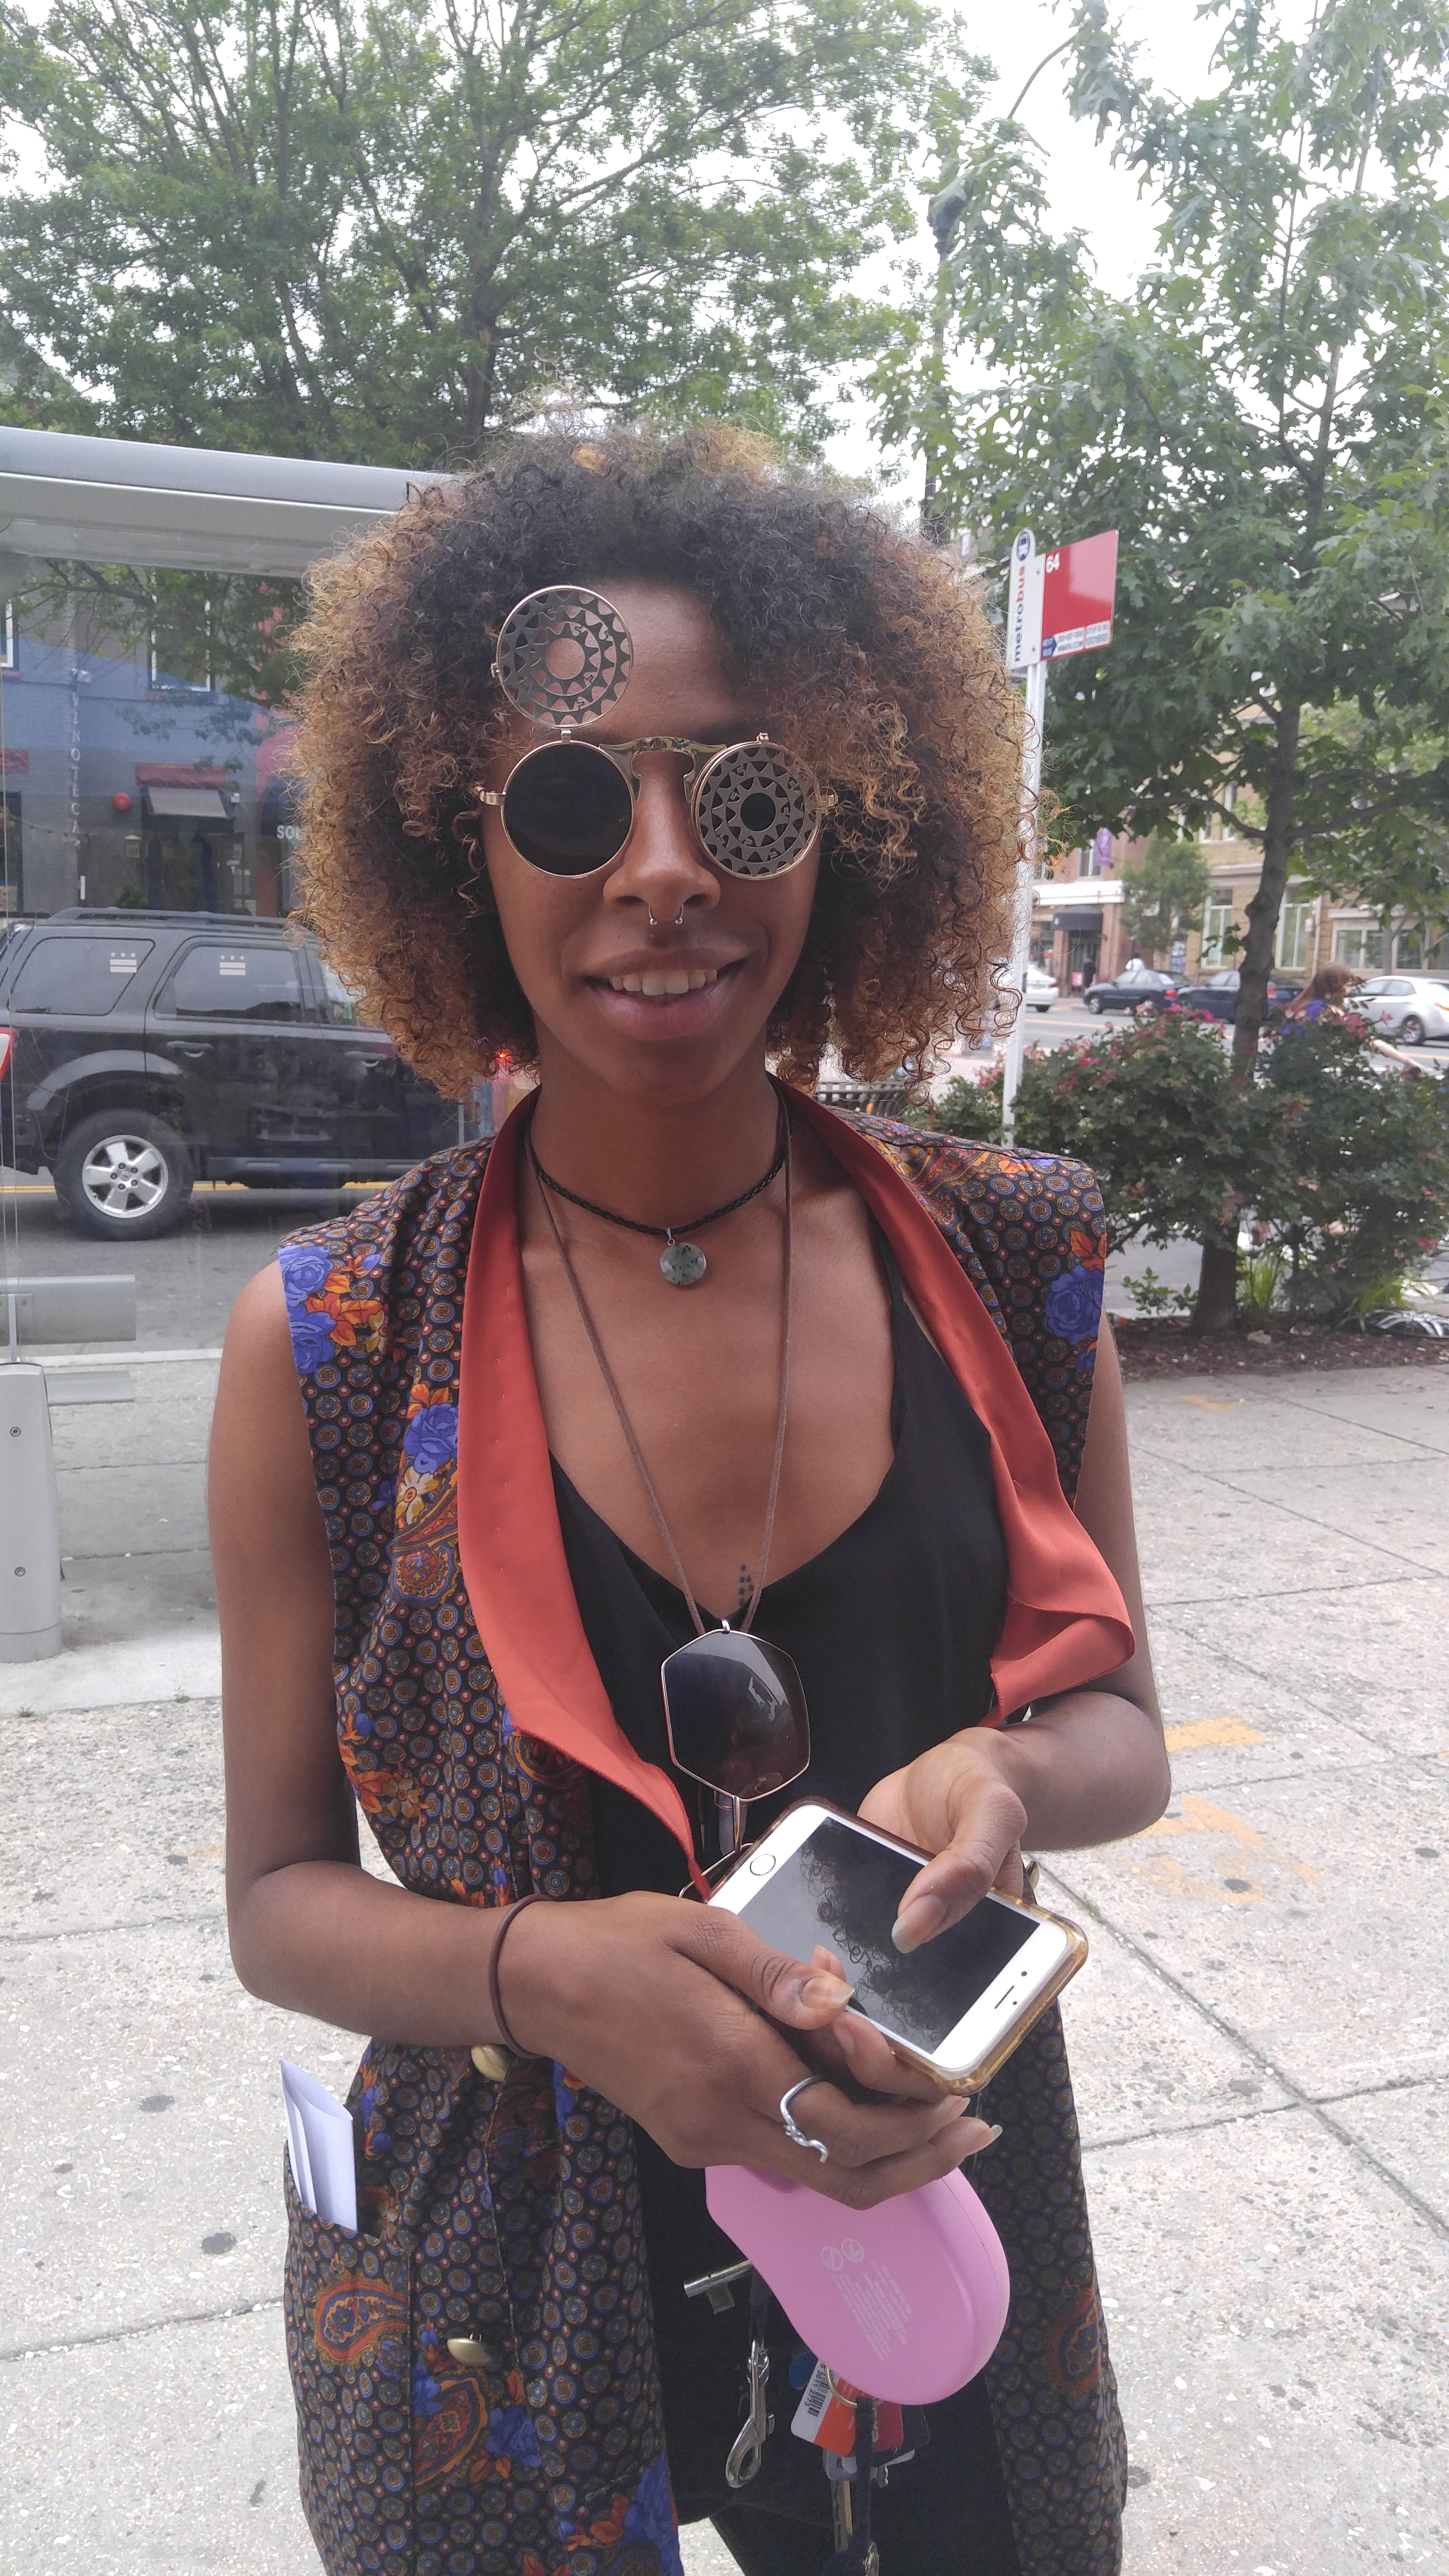 Customer in vintage clamshell sunglasses